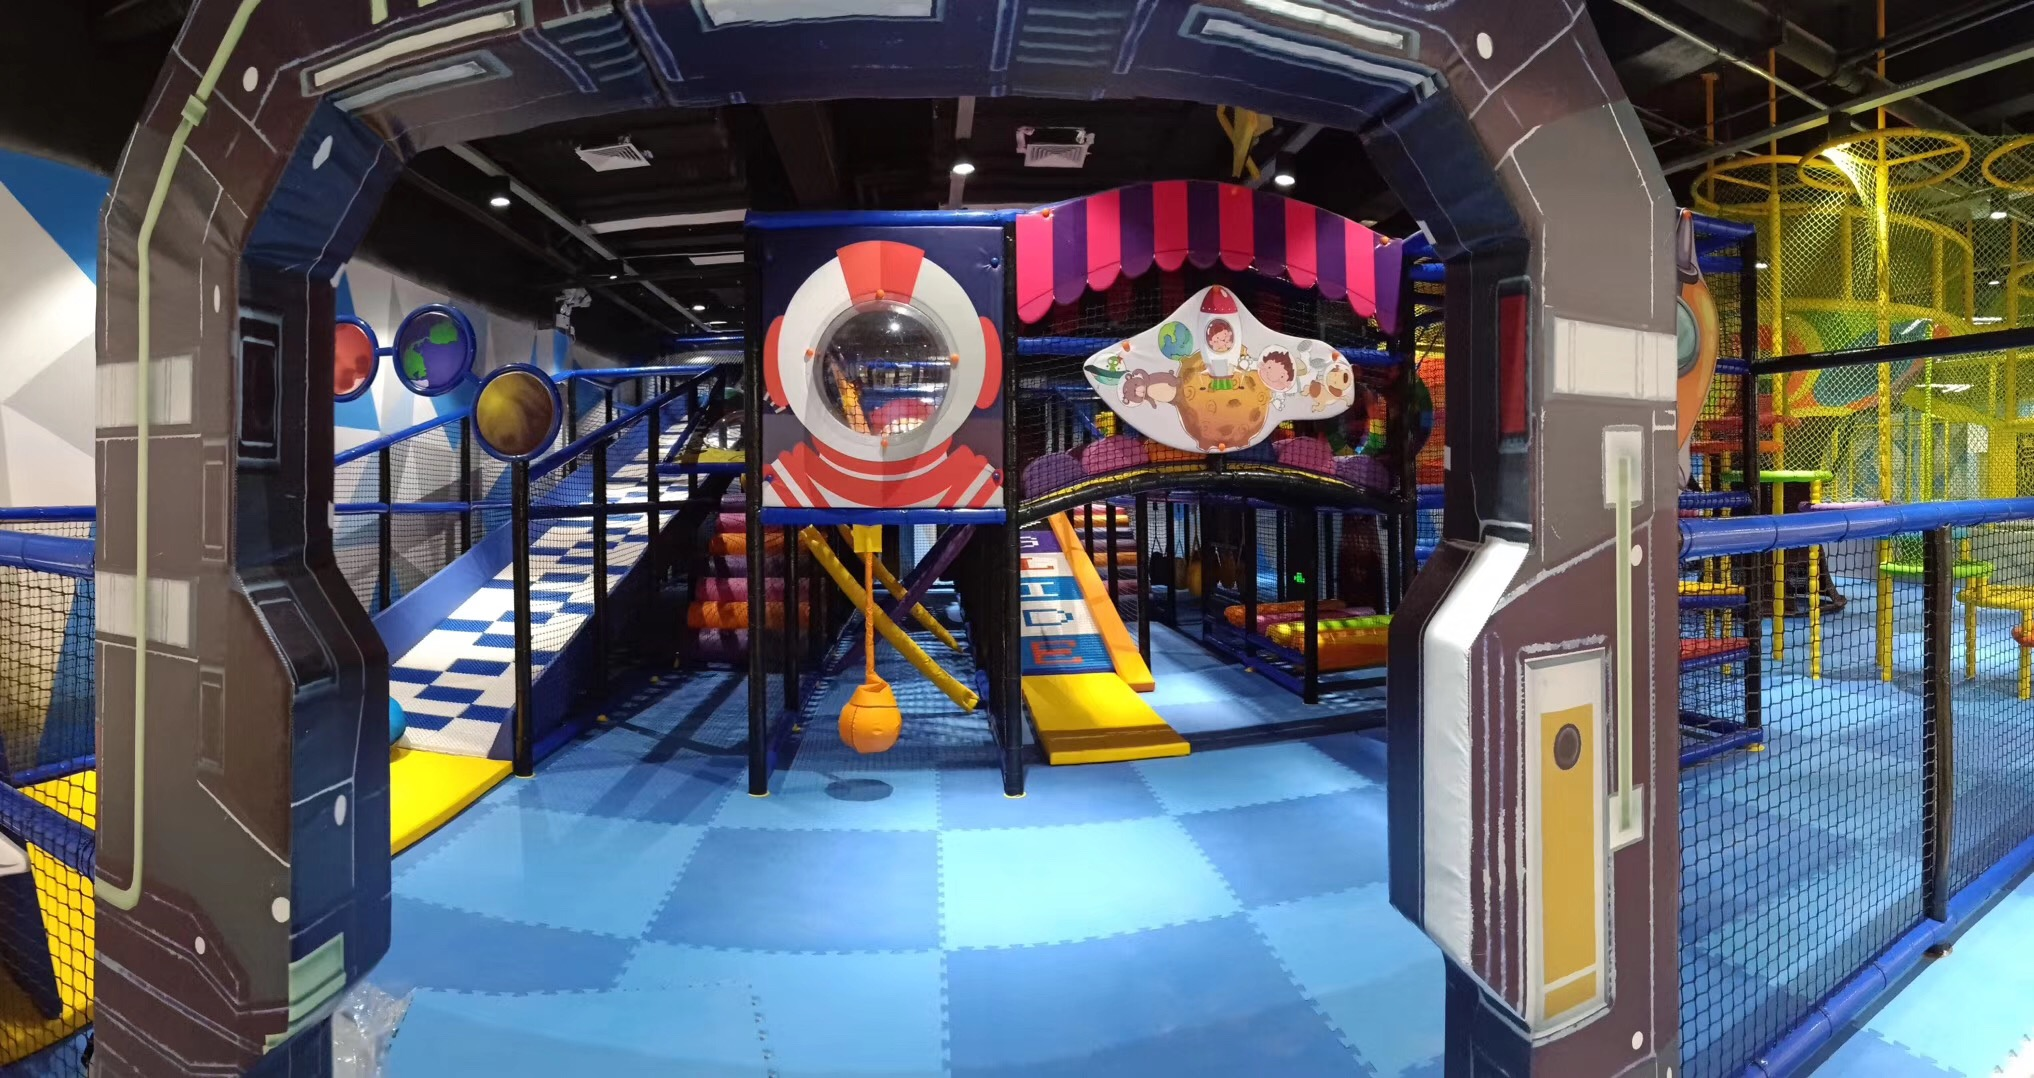 What Are the Requirements for Children Indoor Playground Equipment?